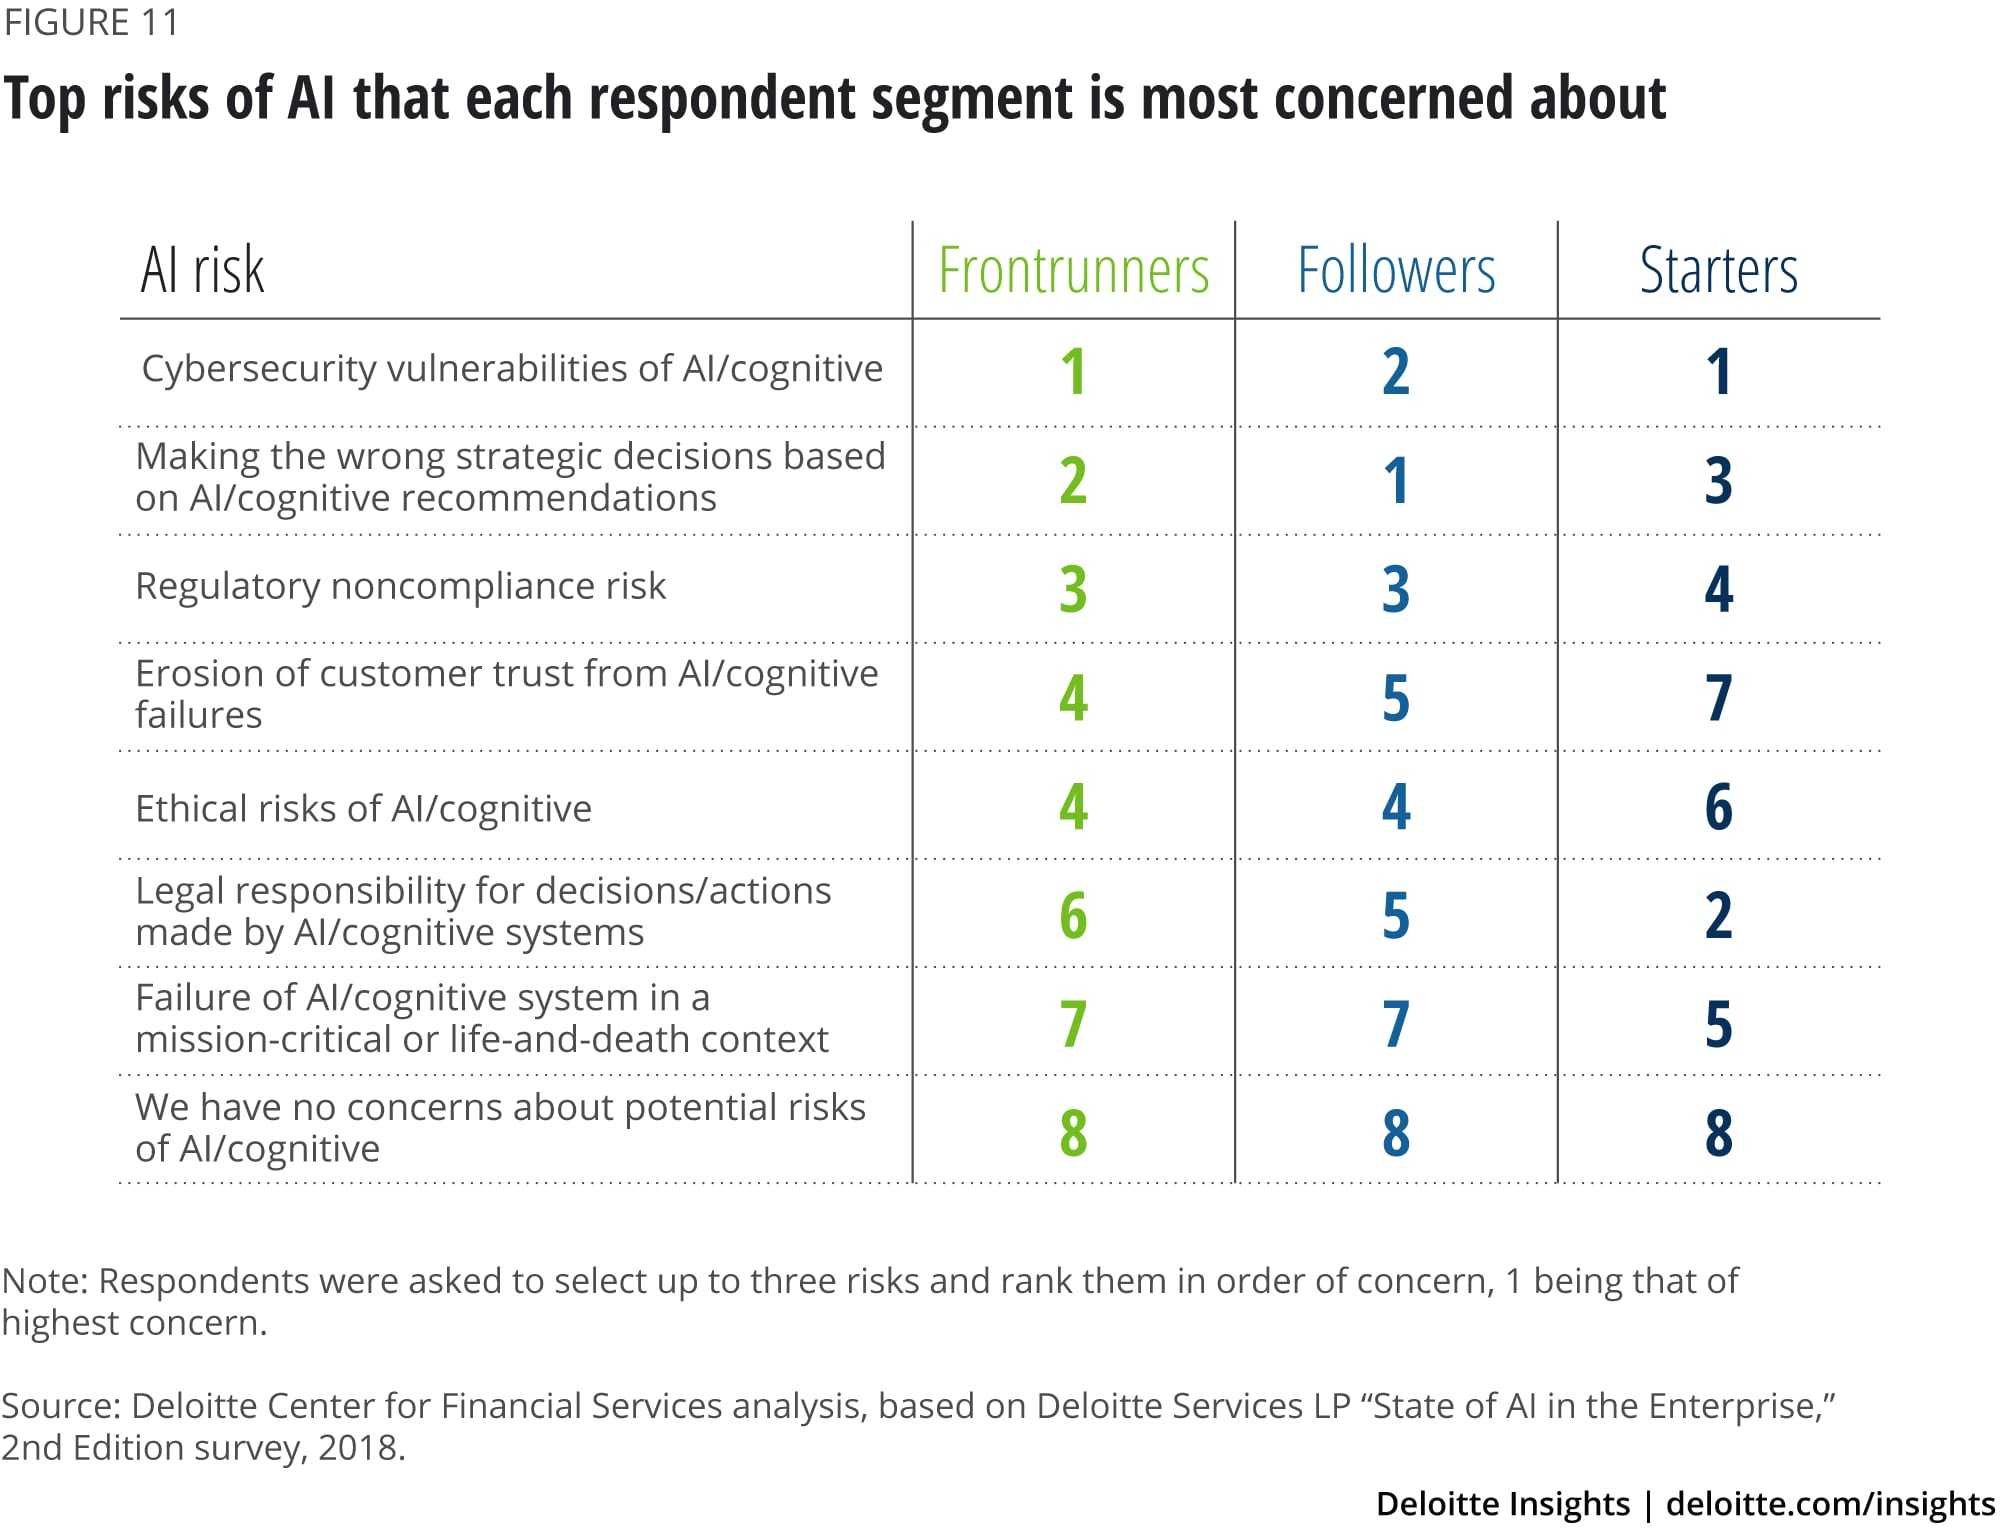 Top risks of AI that each respondent segment is most concerned about